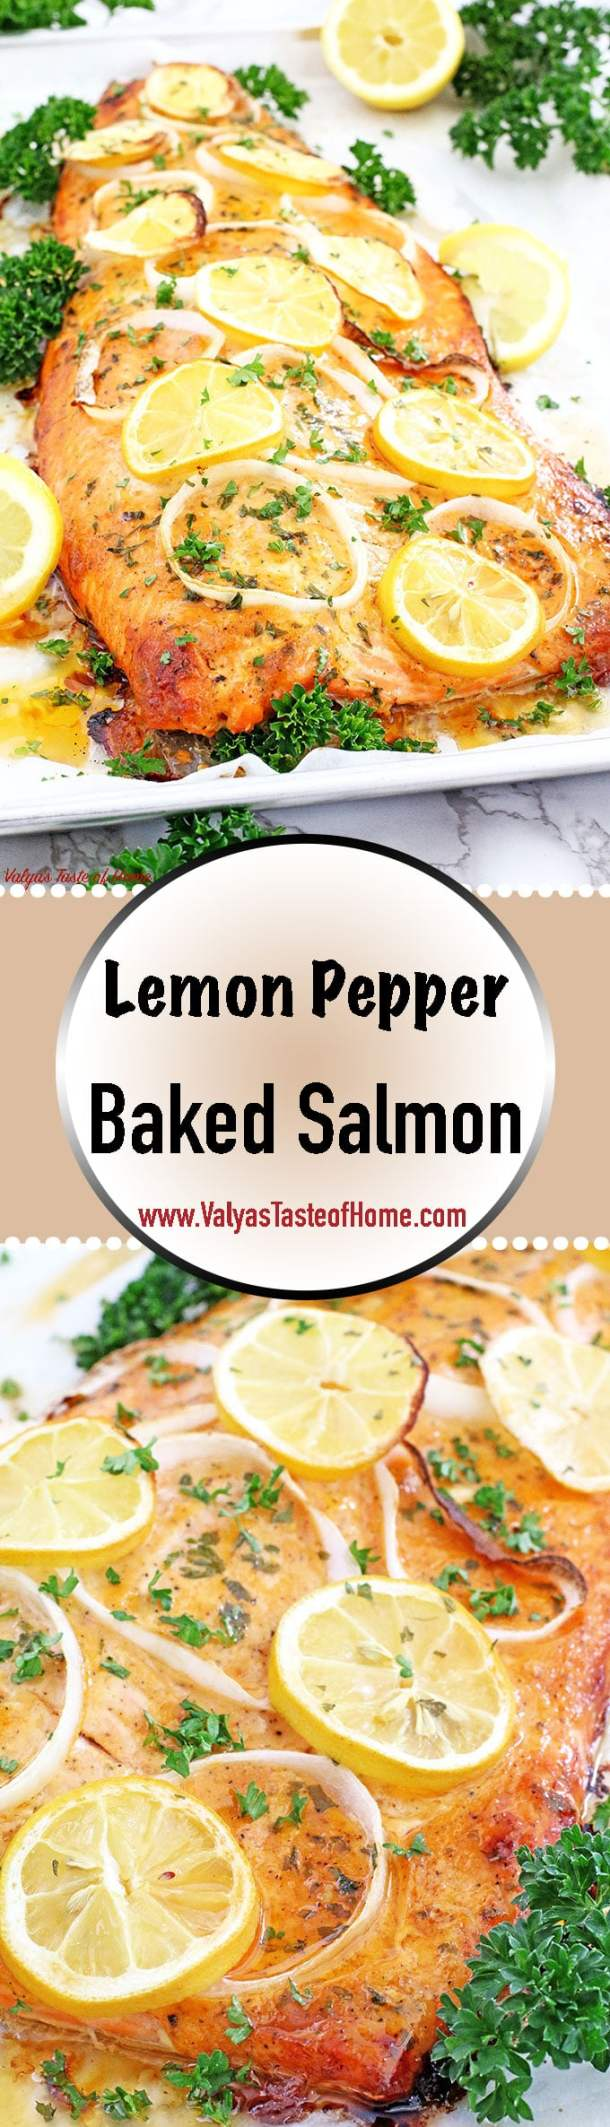 This Lemon Pepper Baked Salmon delicacy is the softest and juiciest baked salmon I've ever had. It bursts with flavor and is absolutely scrumptious. You will have seconds for sure! We usually serve this salmon with mashed potatoes and gravy, as kids like it.   www.valyastasteofhome.com